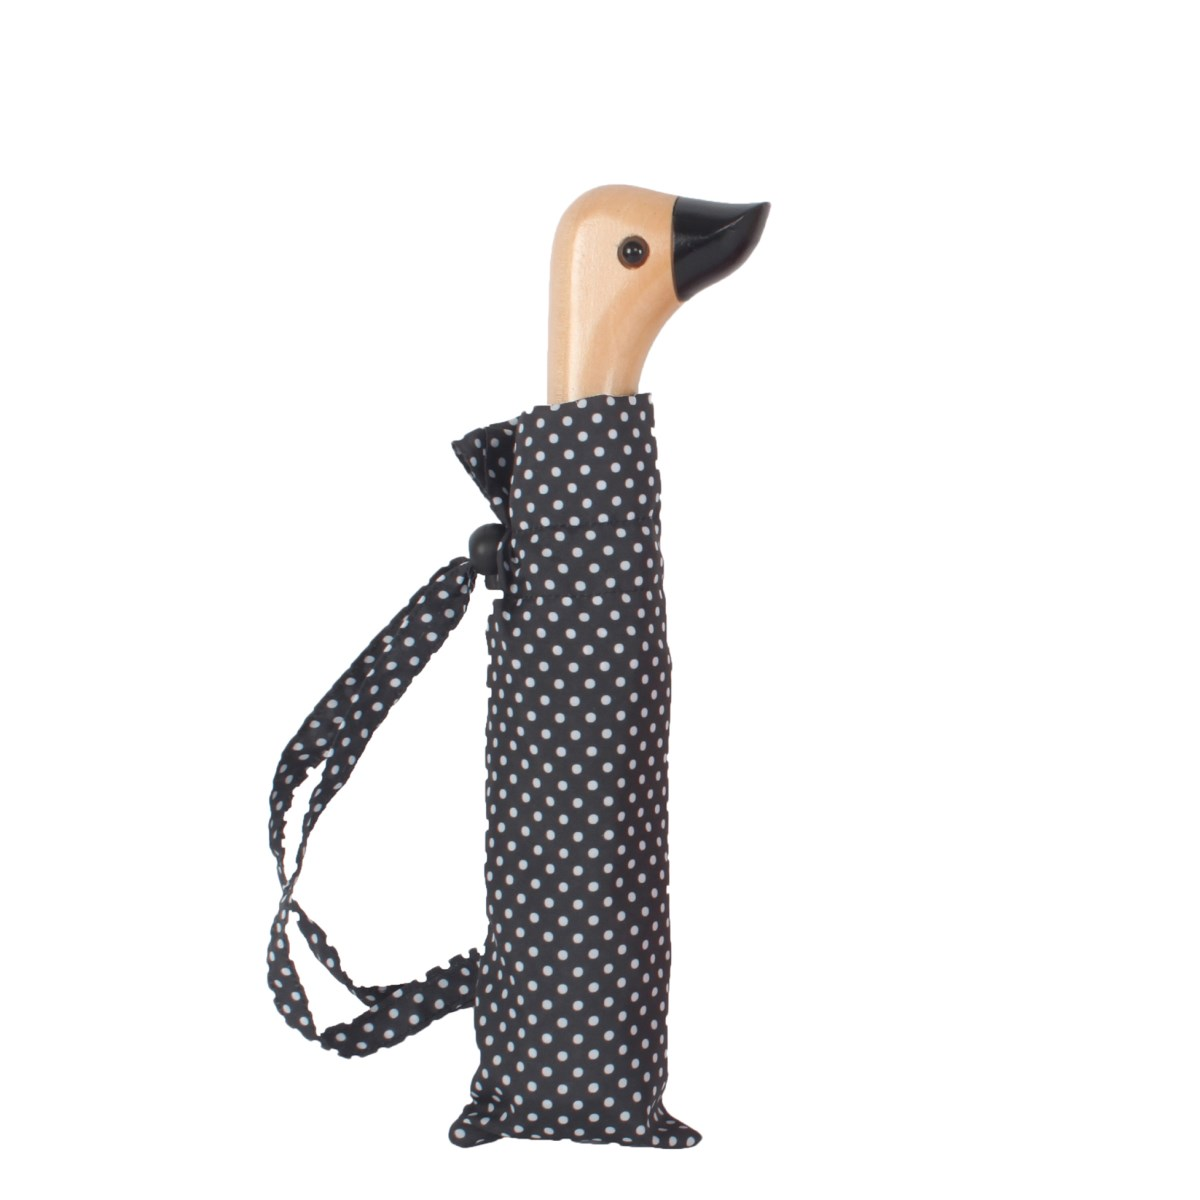 Black & White Polka Dot Duck Head Handle Ladies Compact Umbrella (31702)